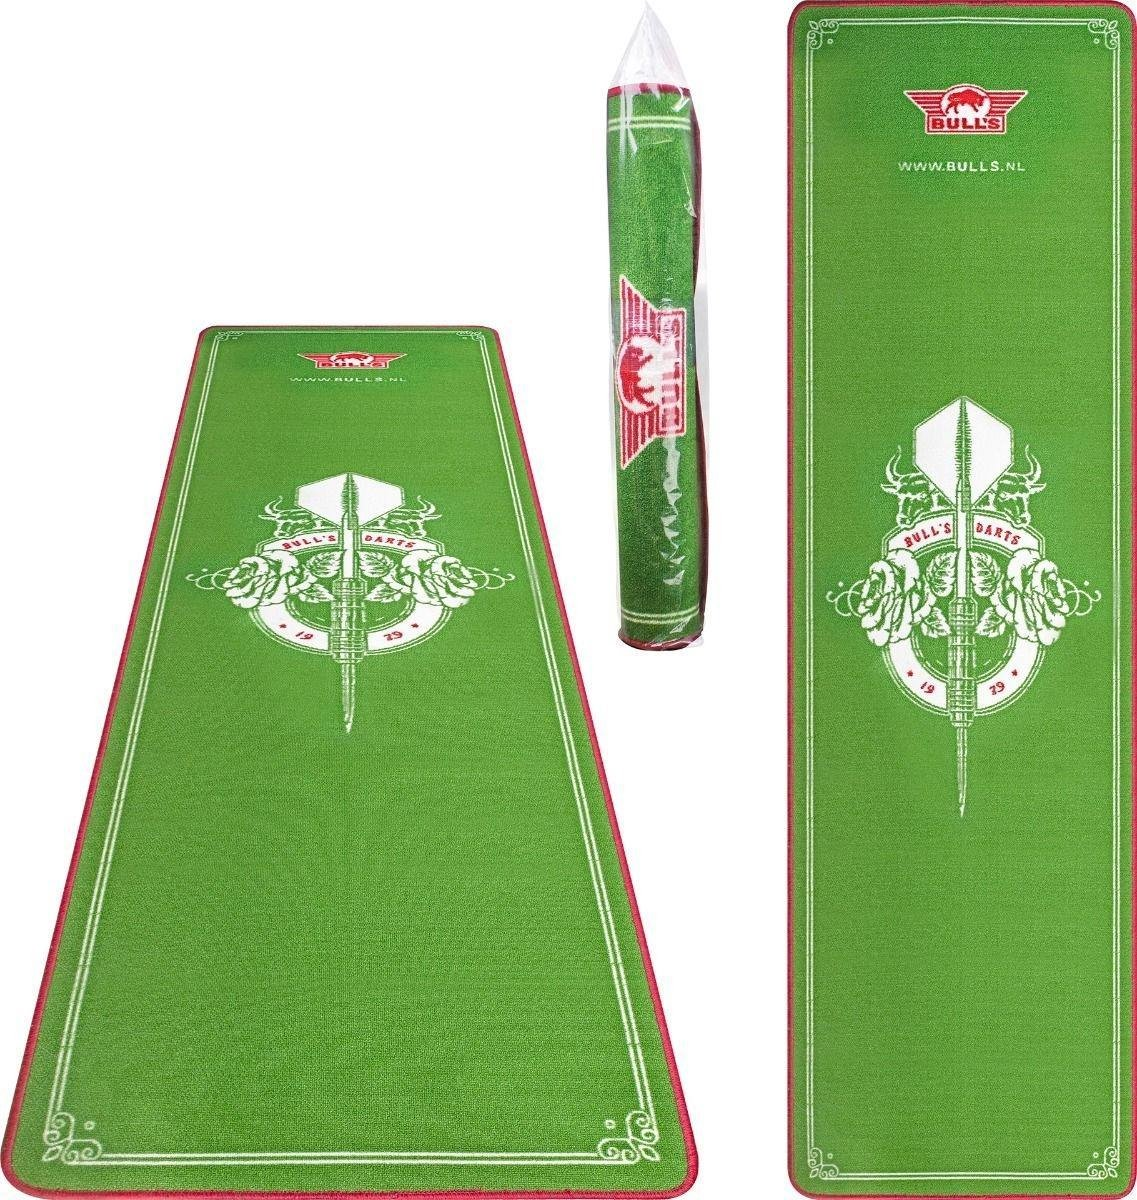 Bull's Carpet Mat Green 241x67 cm